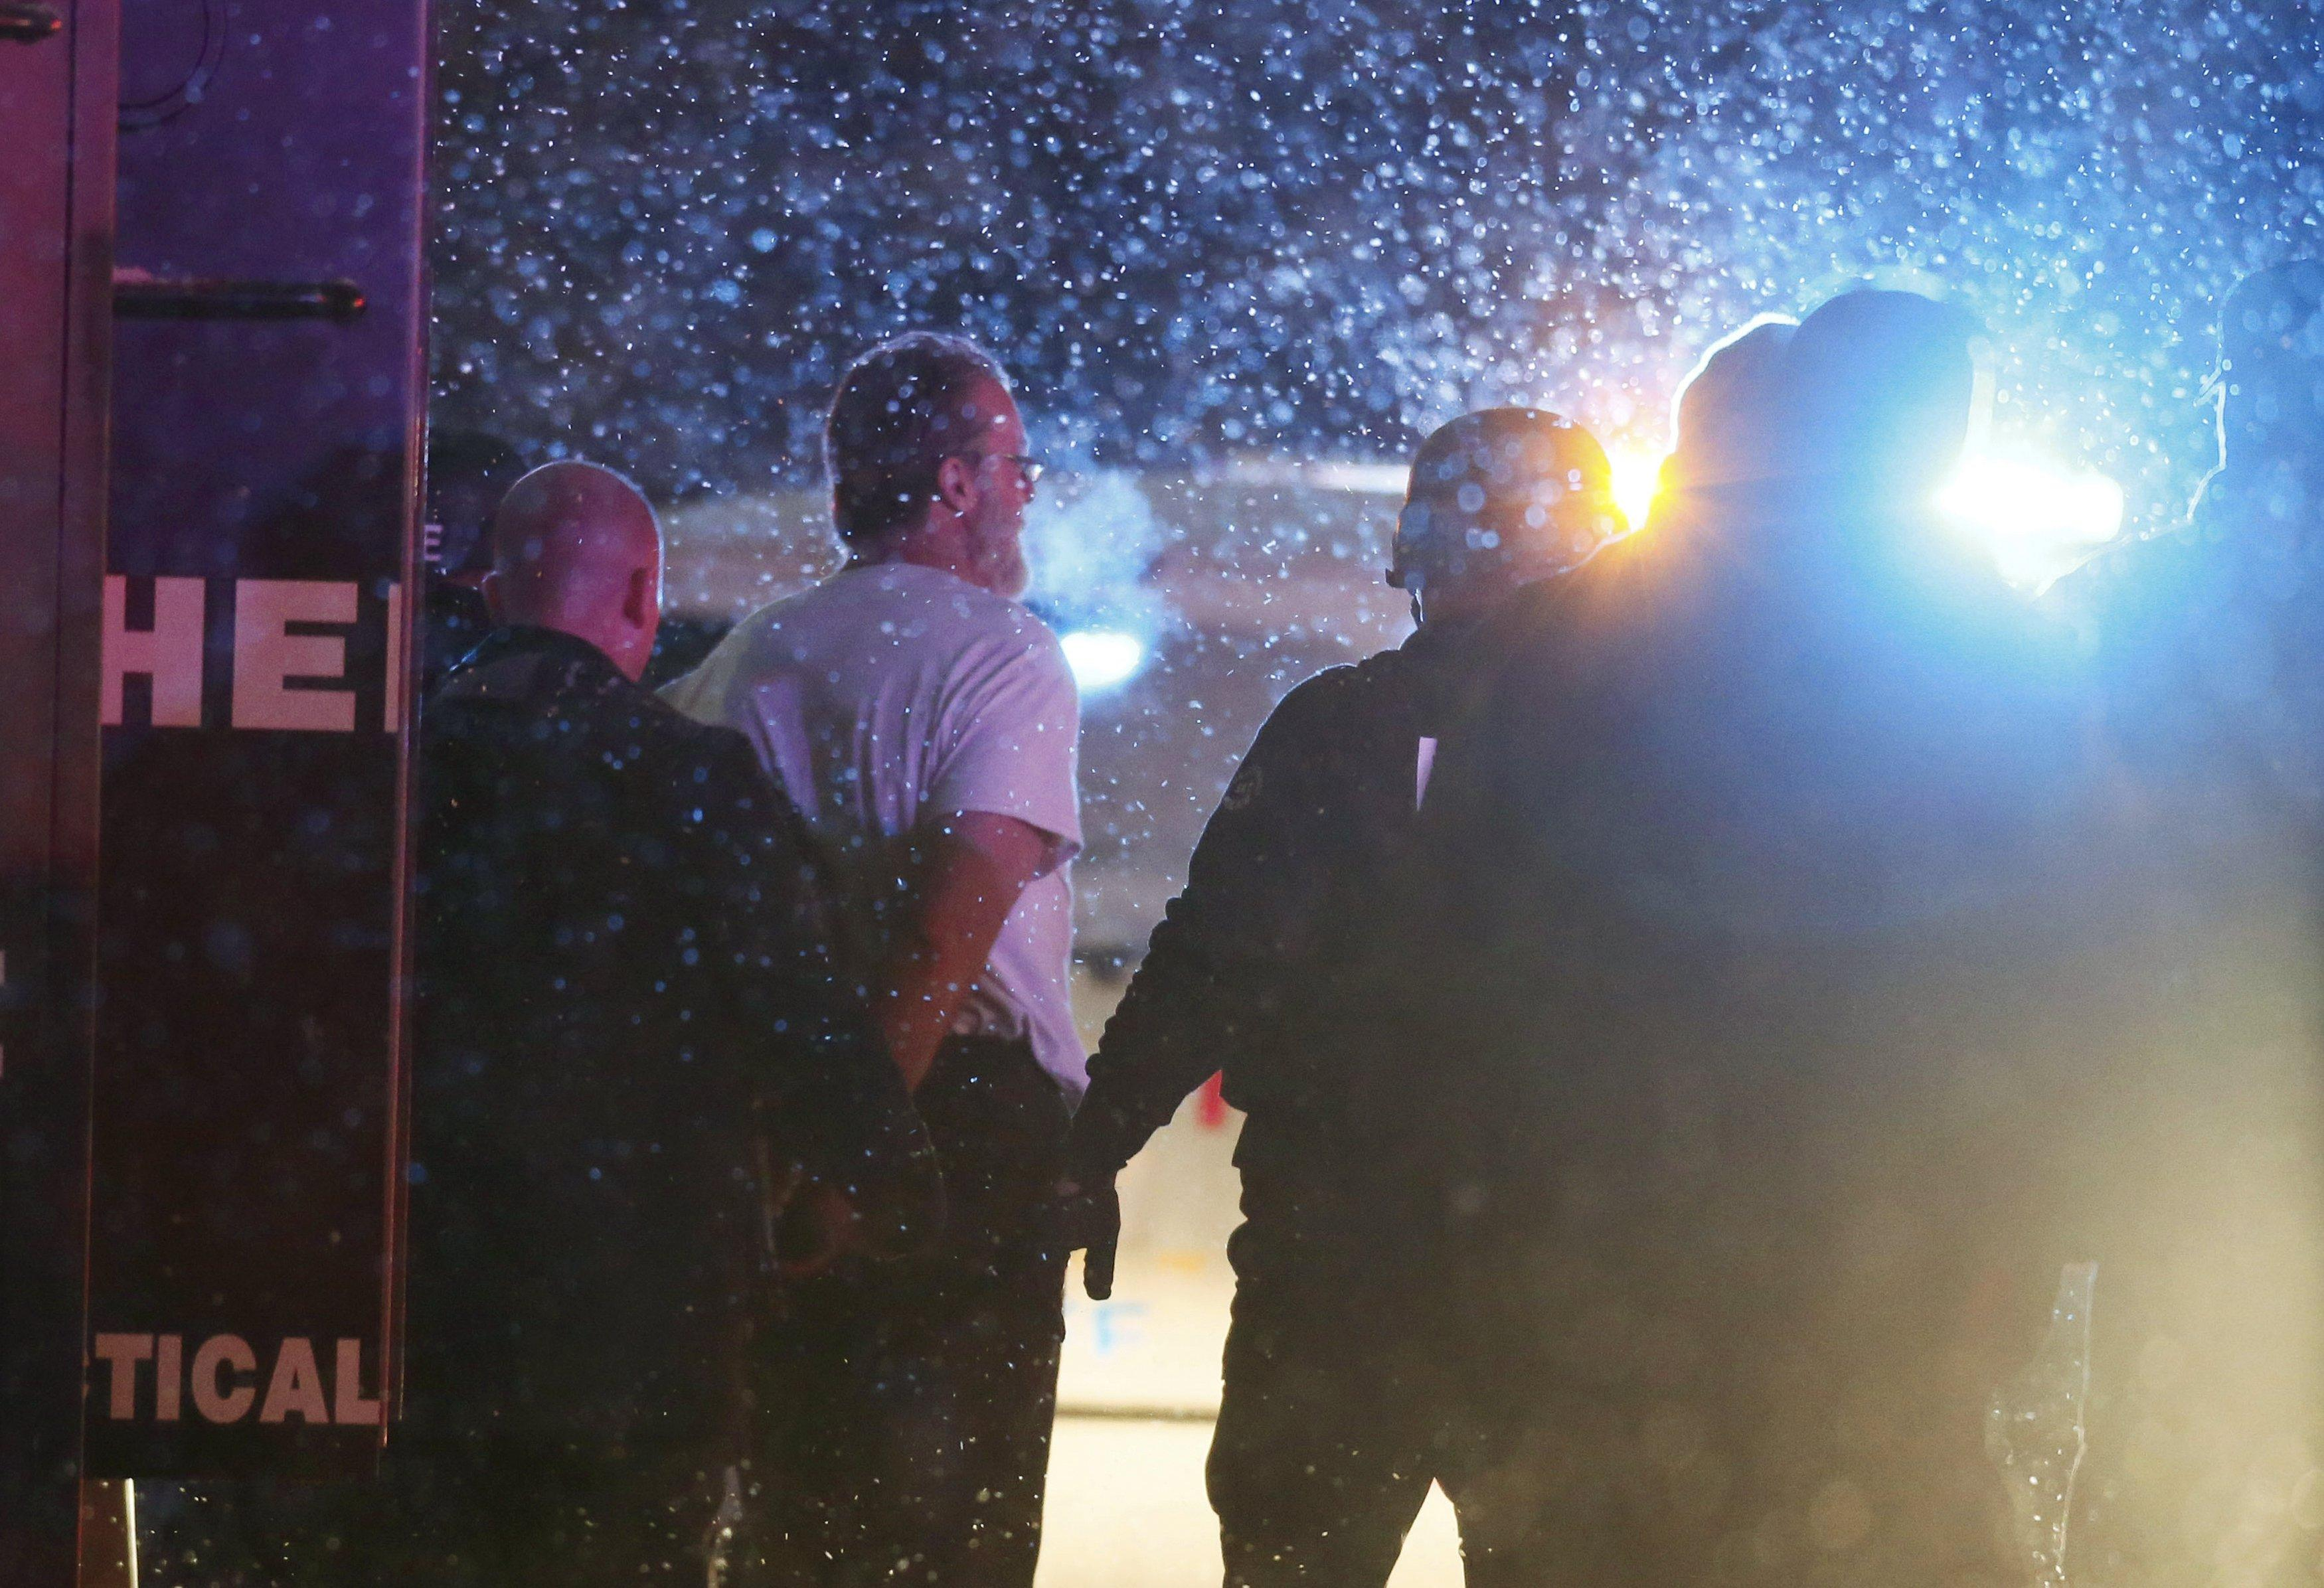 Planned Parenthood shootings in Colorado